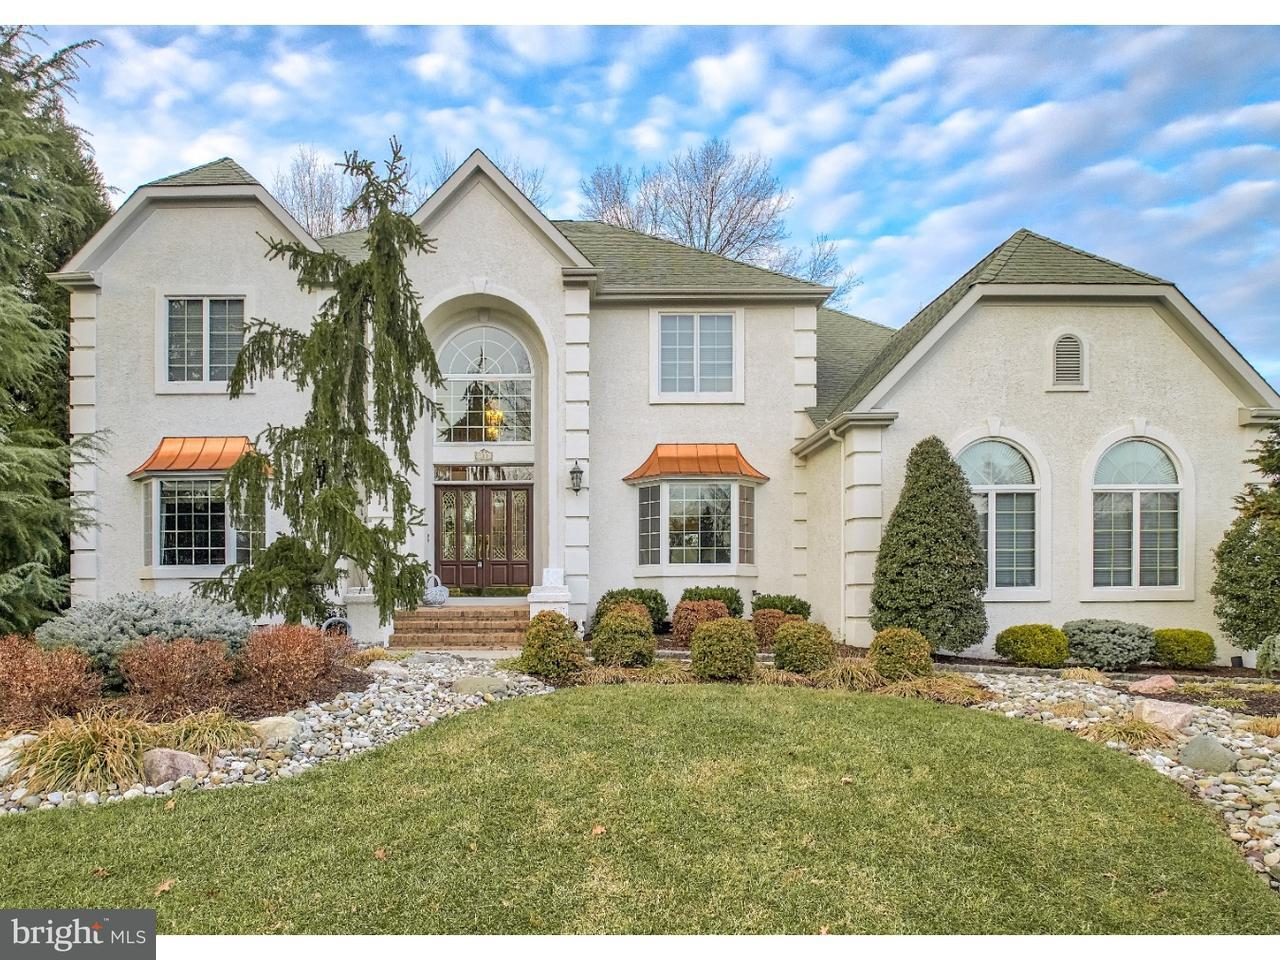 Single Family Home for Sale at 100 MOUNTAINVIEW Road Mount Laurel, New Jersey 08054 United States